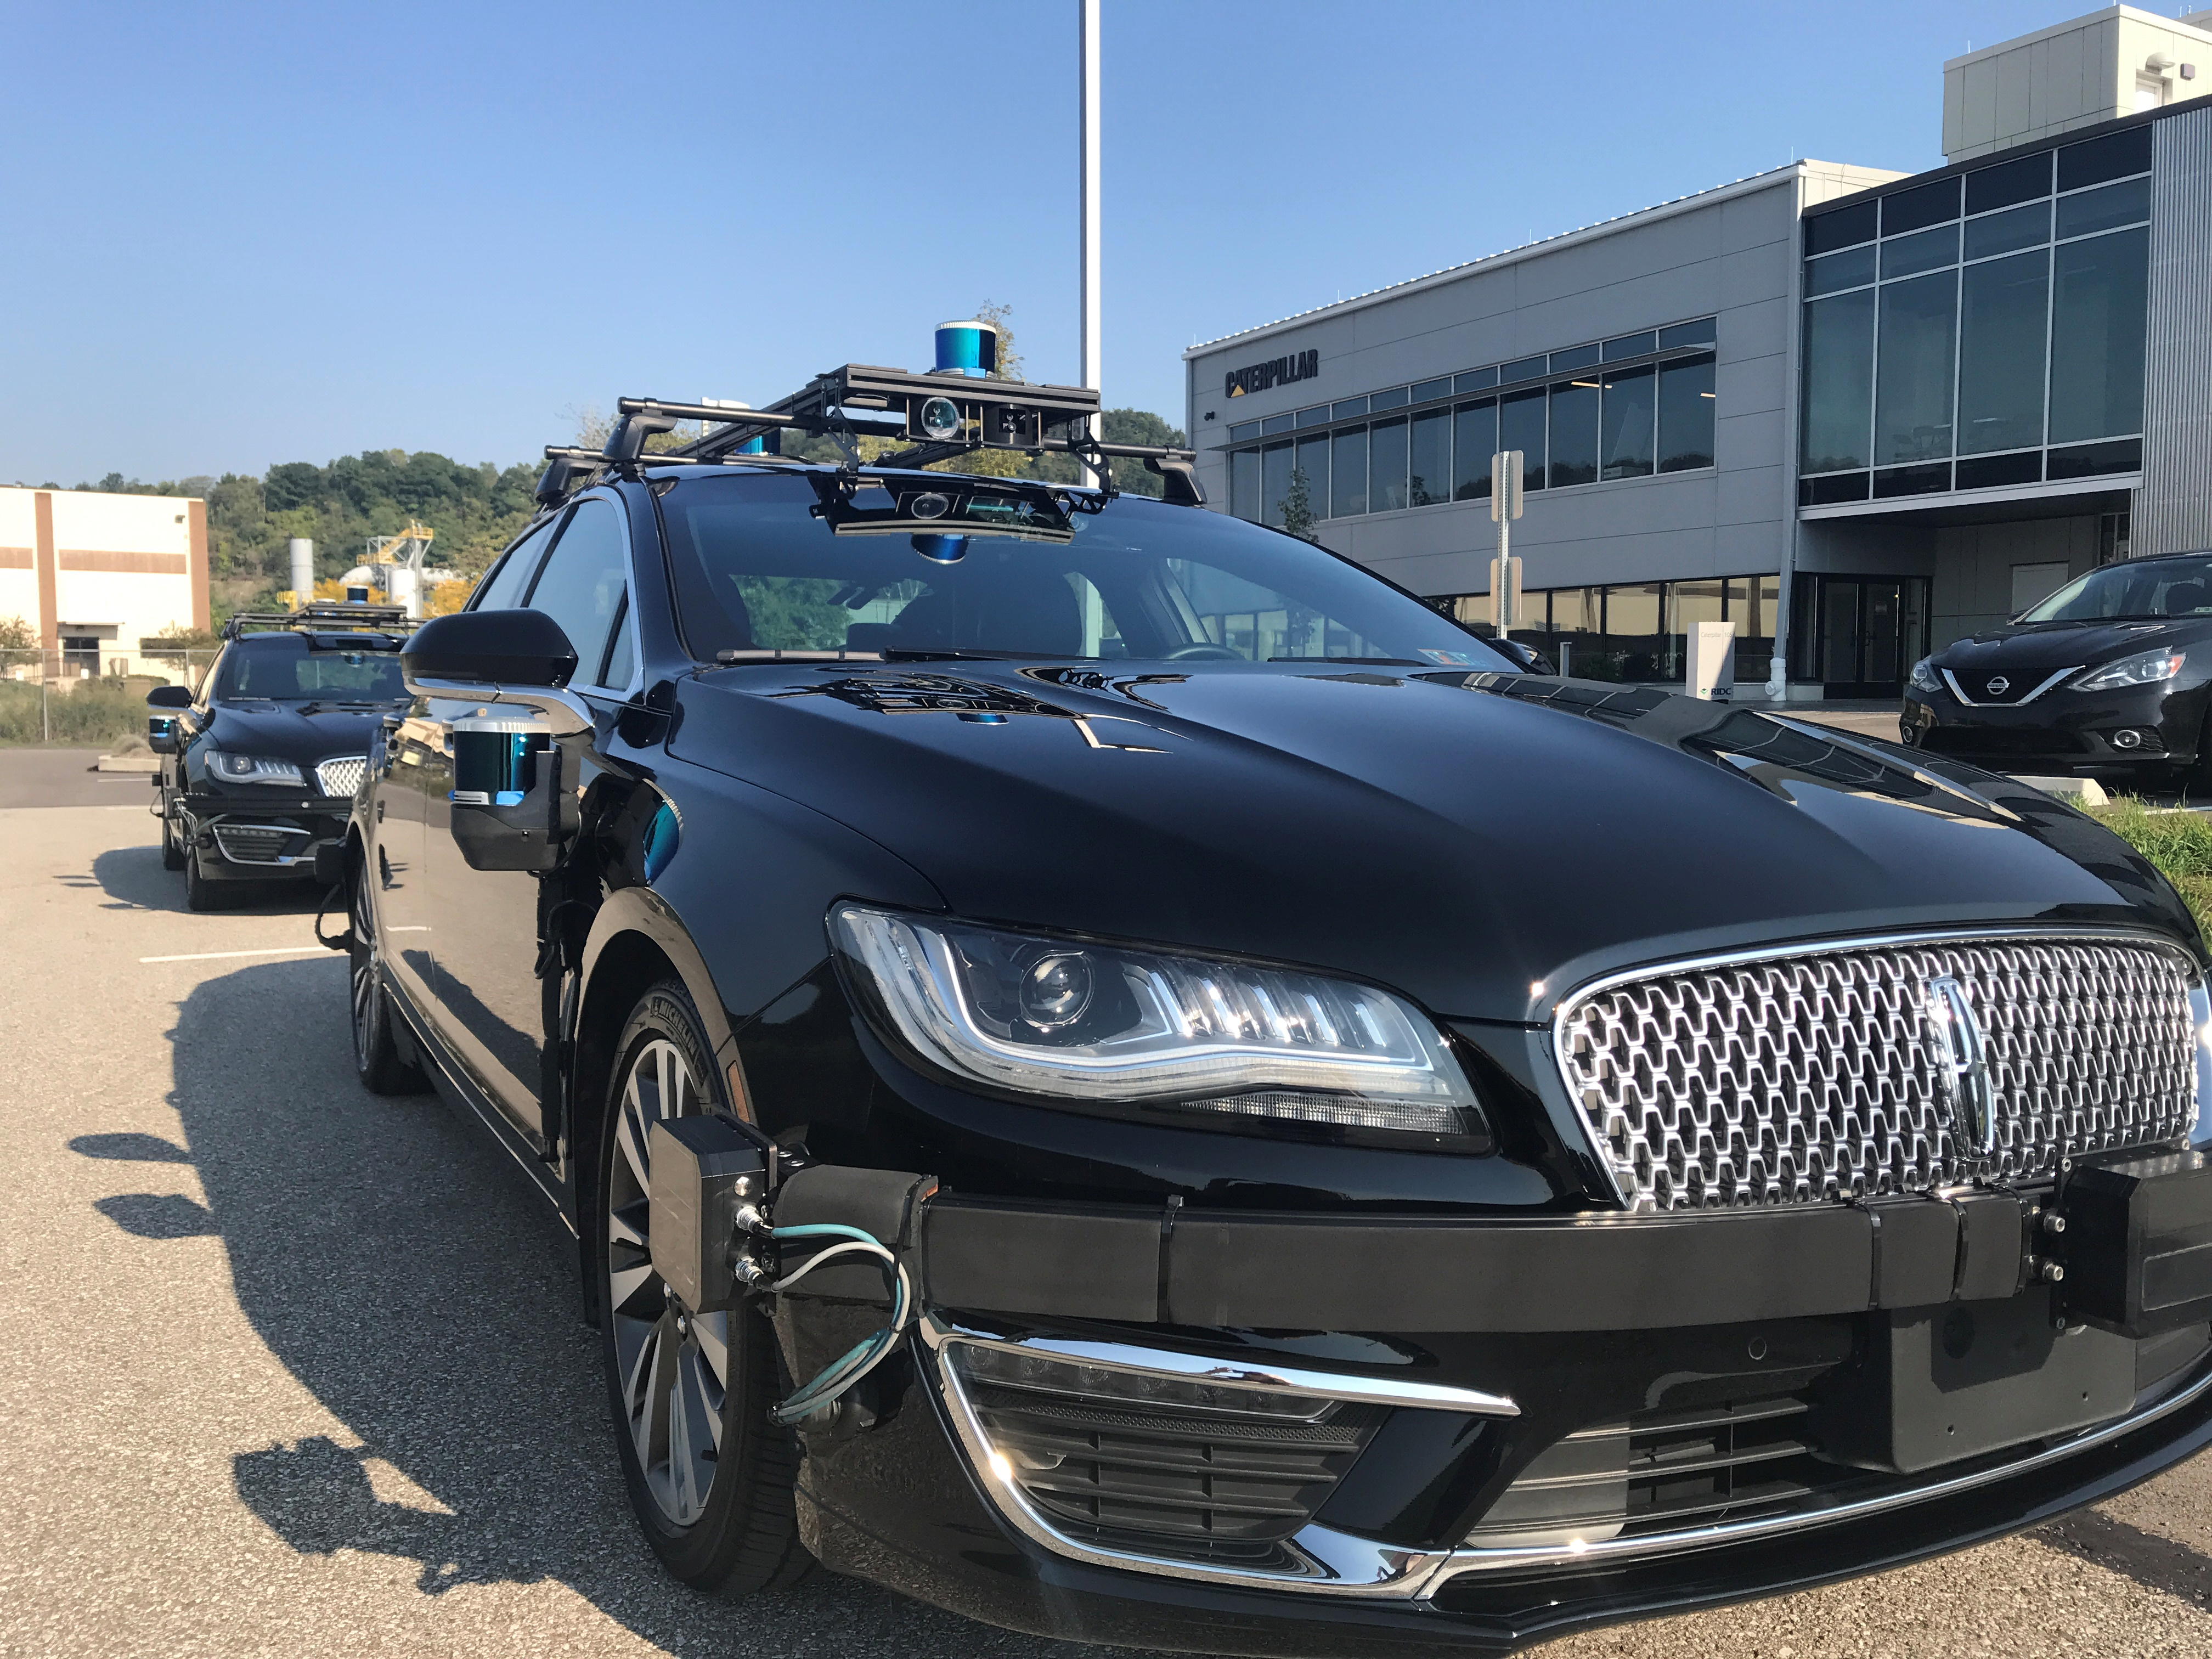 An Aurora self-driving Lincoln MKZ car is seen outside the company's office in the Lawrenceville neighborhood in Pittsburgh, Pennsylvania, U.S., September 21, 2018.   REUTERS/Heather Somerville